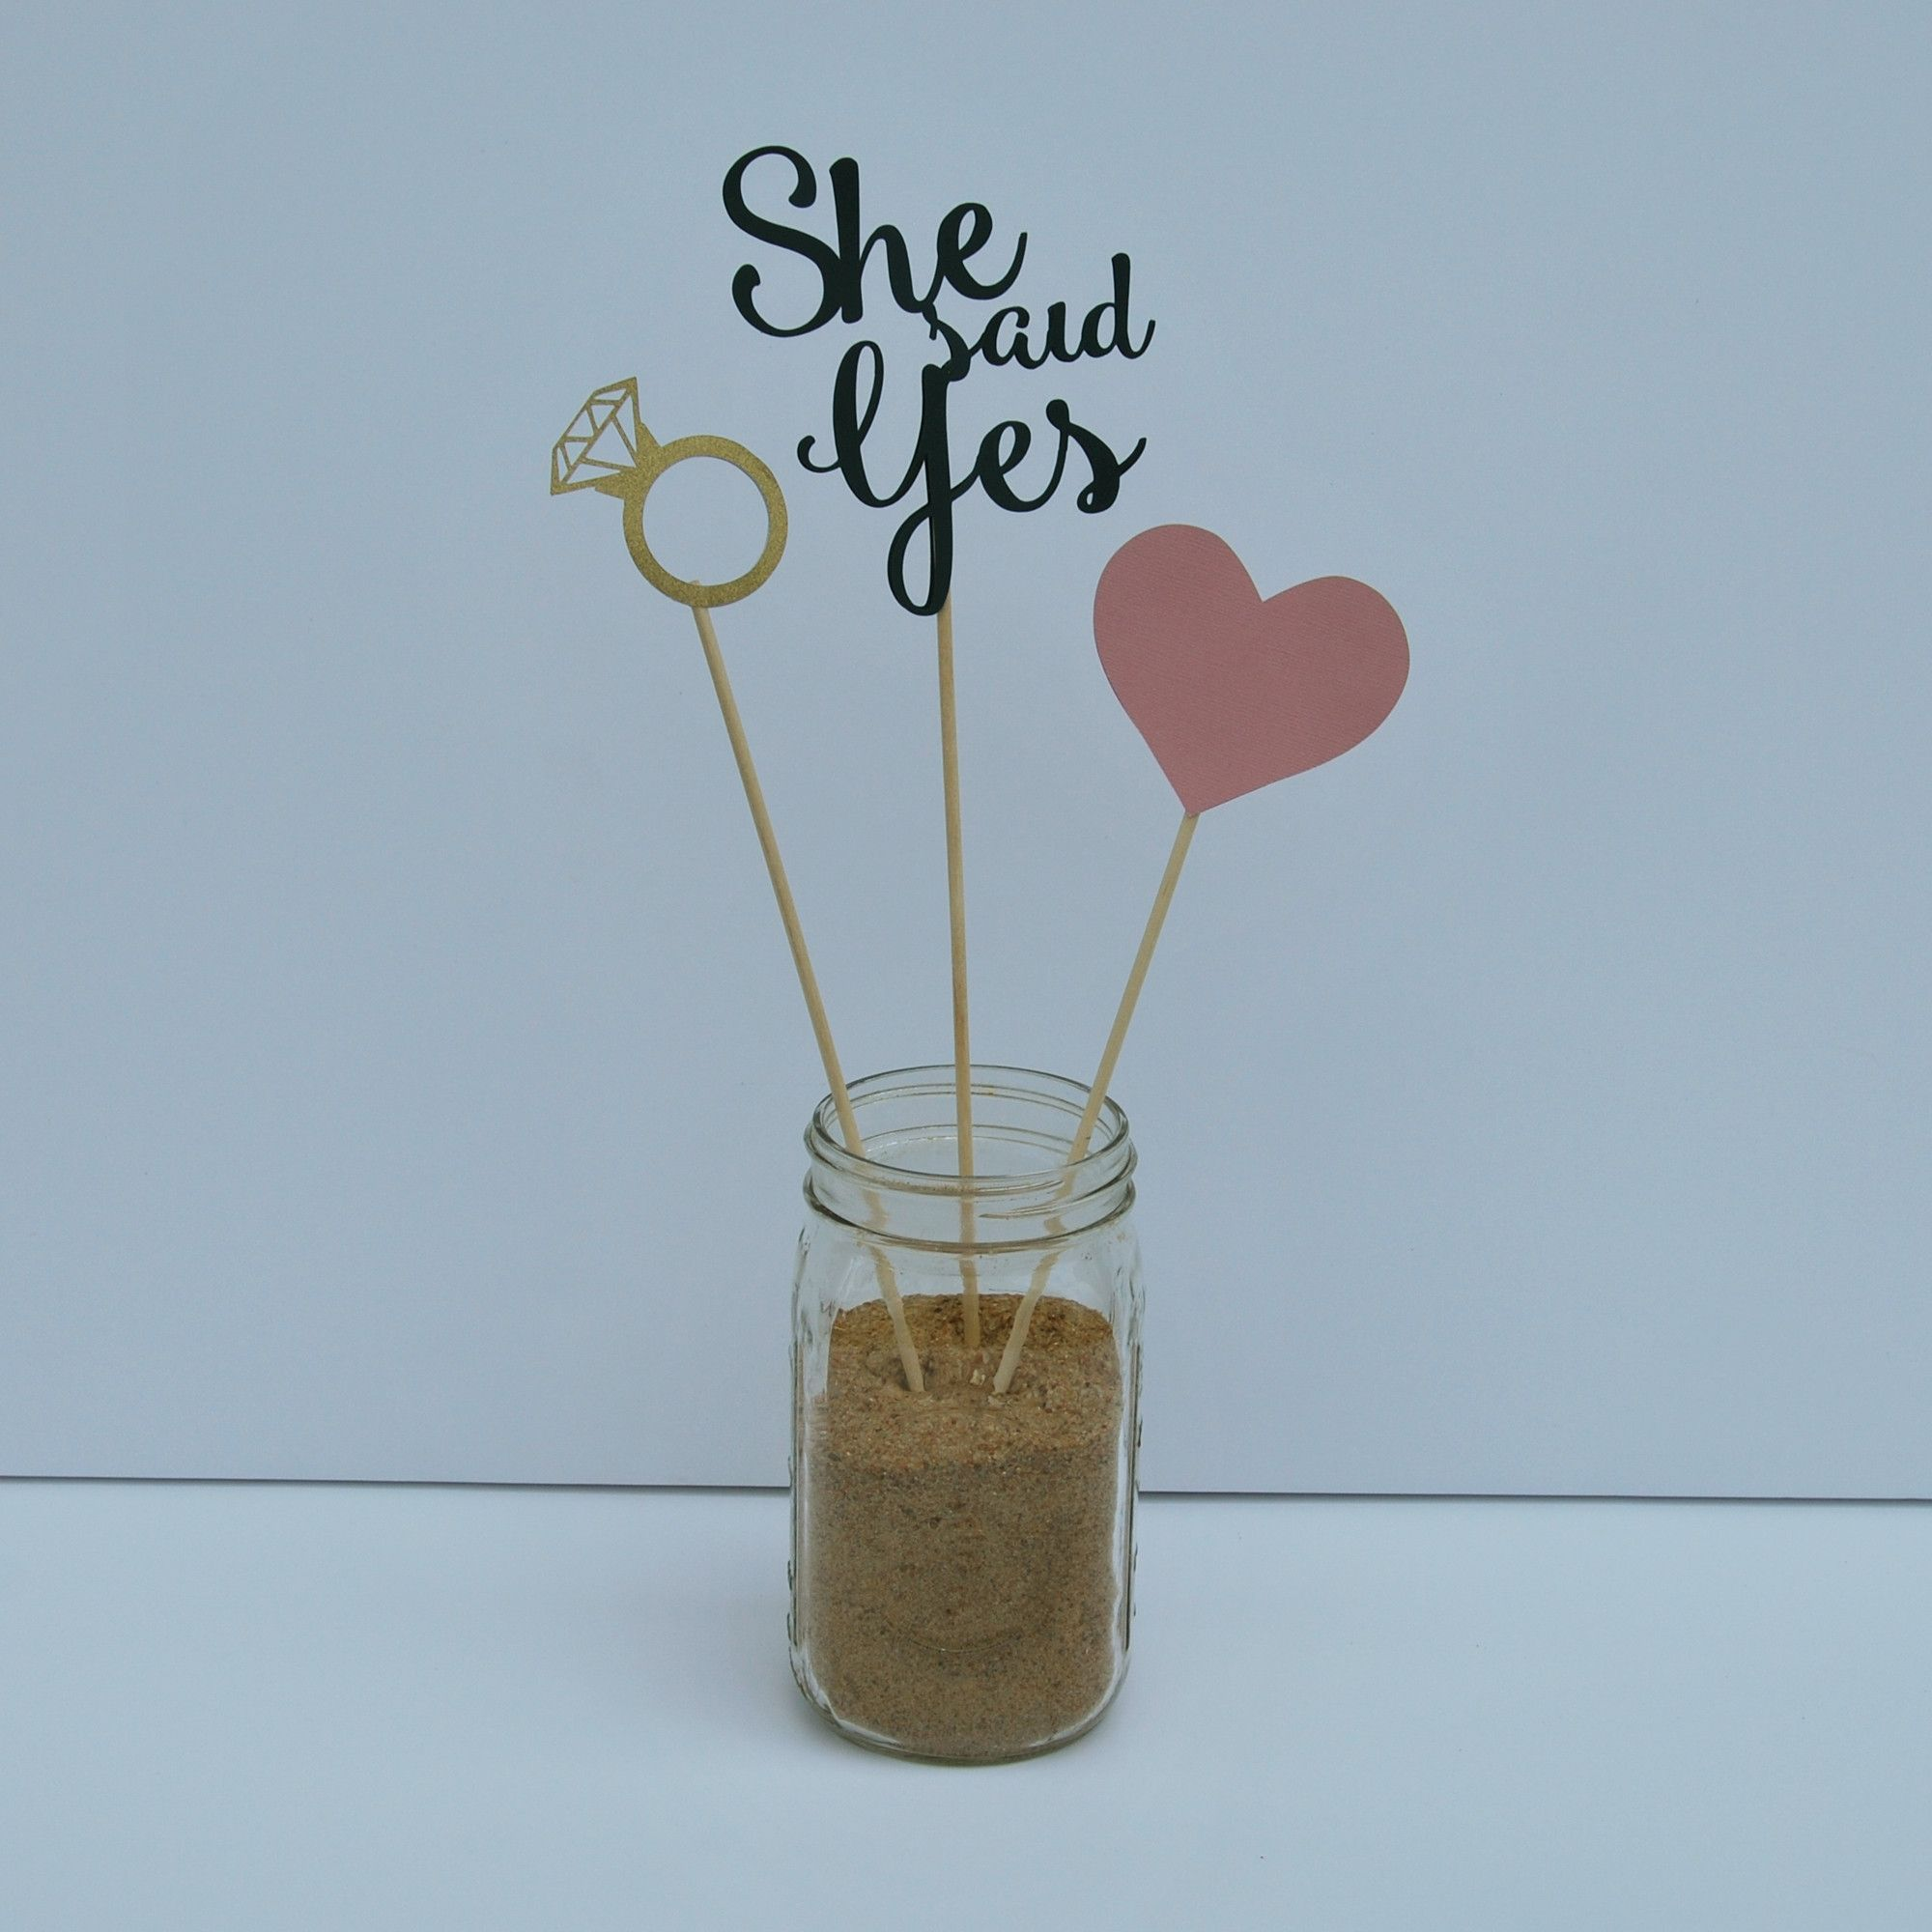 These cute centerpieces are perfect for an